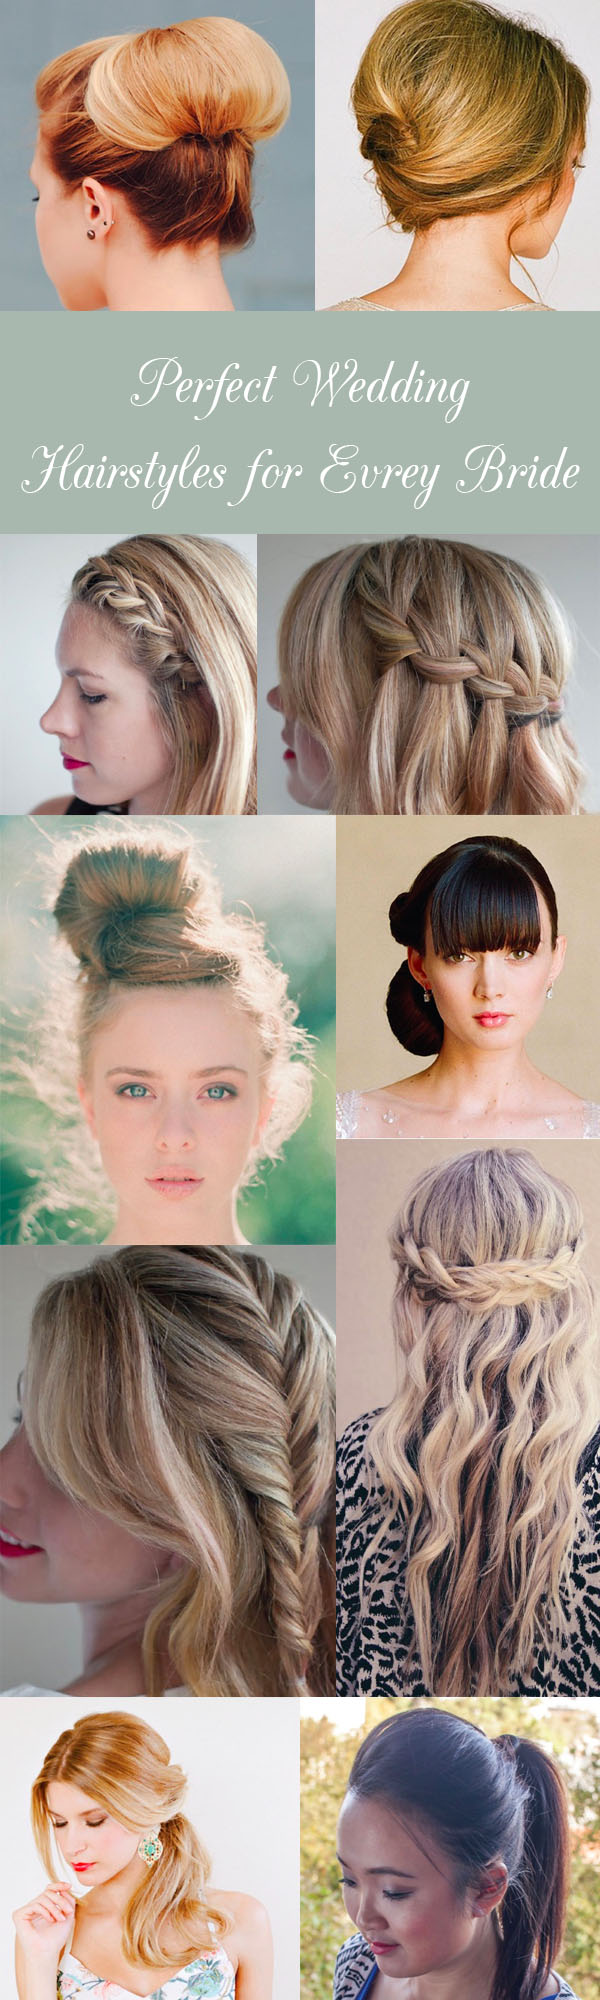 Perfect wedding hairstyles for every bride - Hair Romance